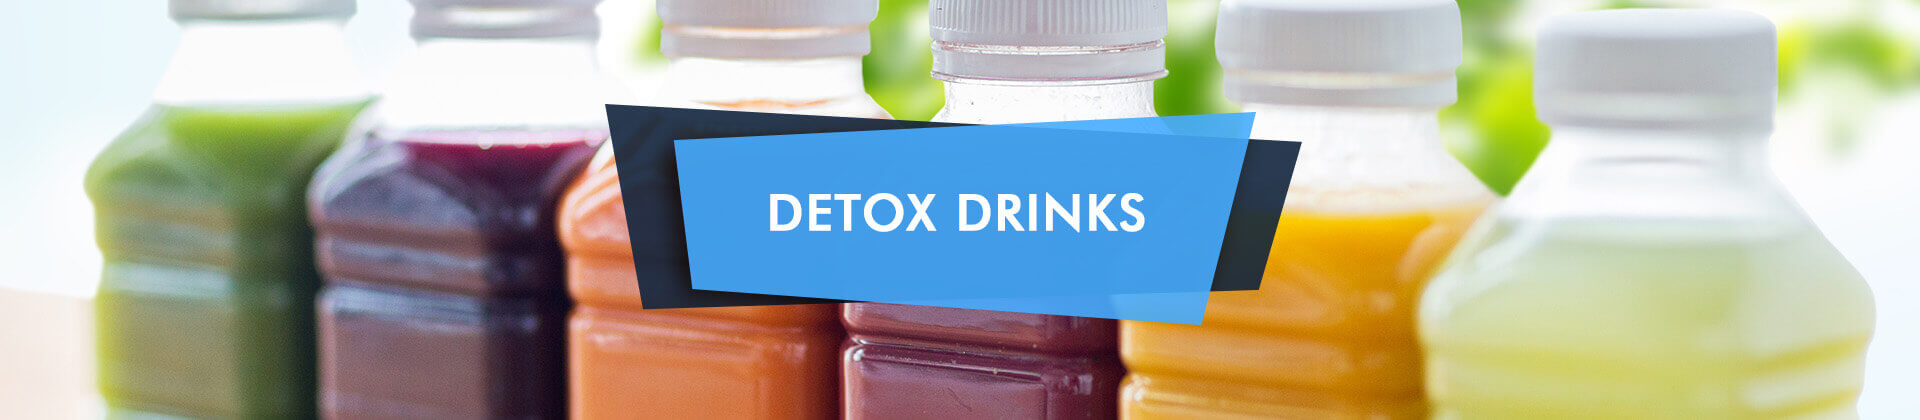 Drug Detox Drinks